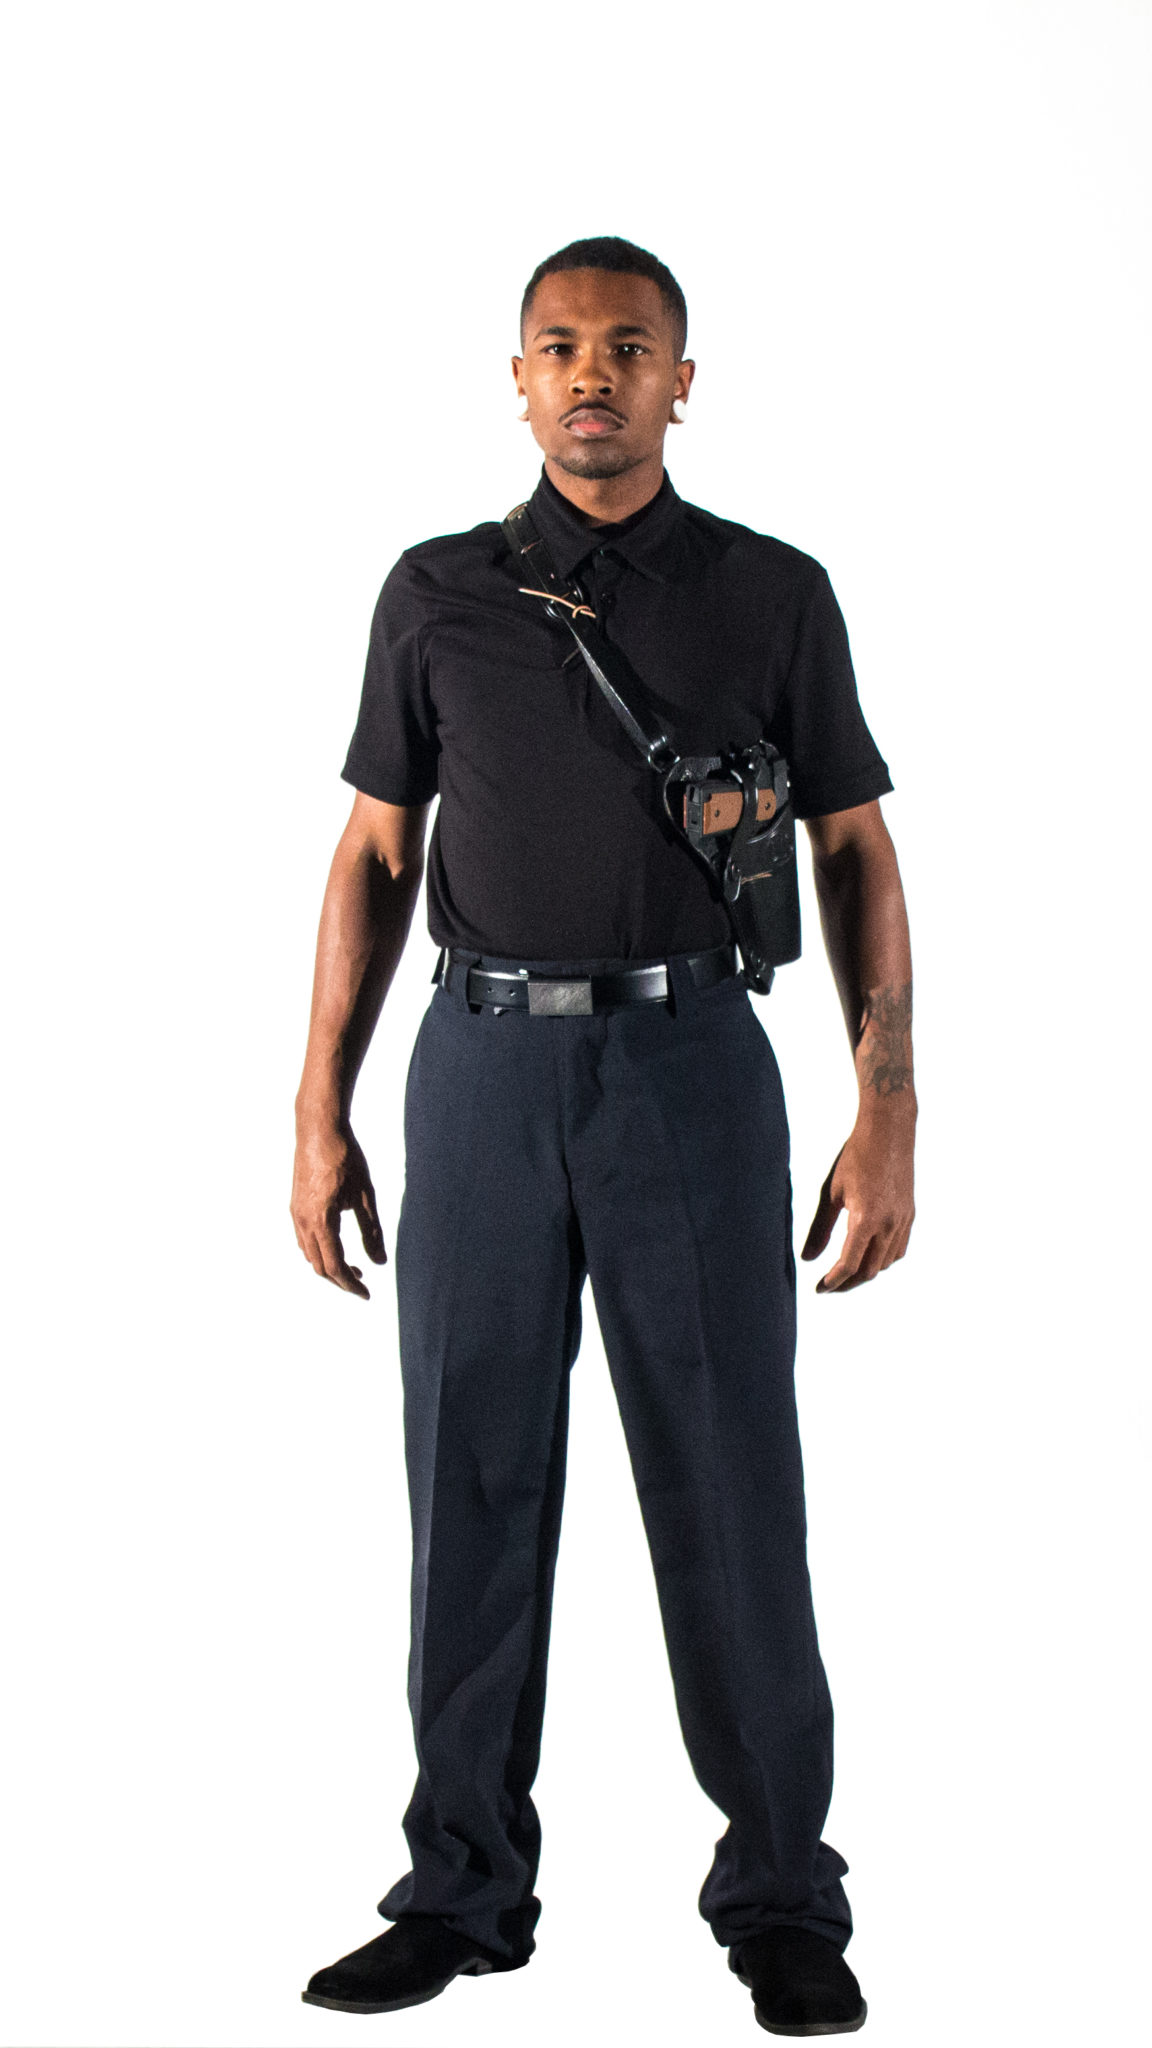 Police Detective Costume Rentals In Los Angeles